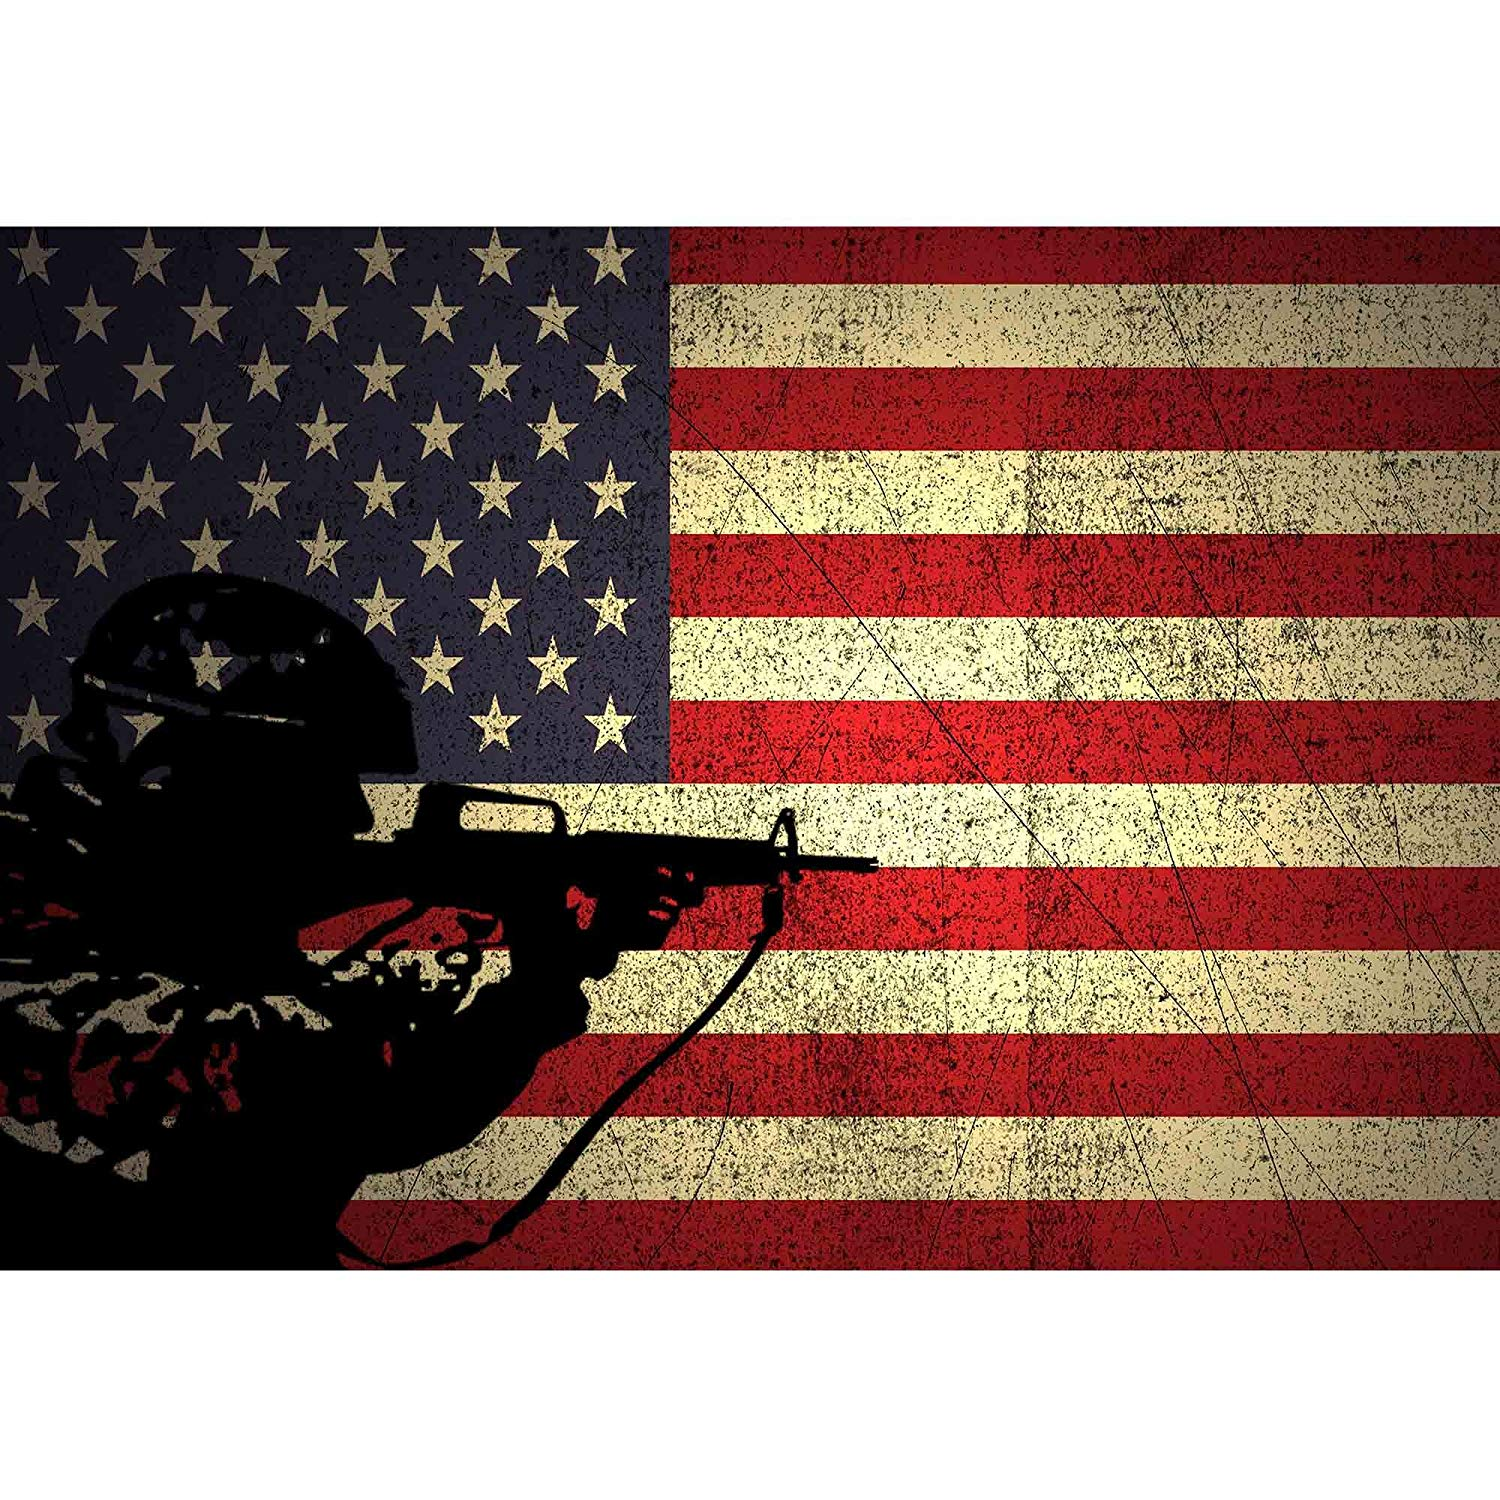 Wall26 A Silhouette Of A Soldier On The Grunge American Flag